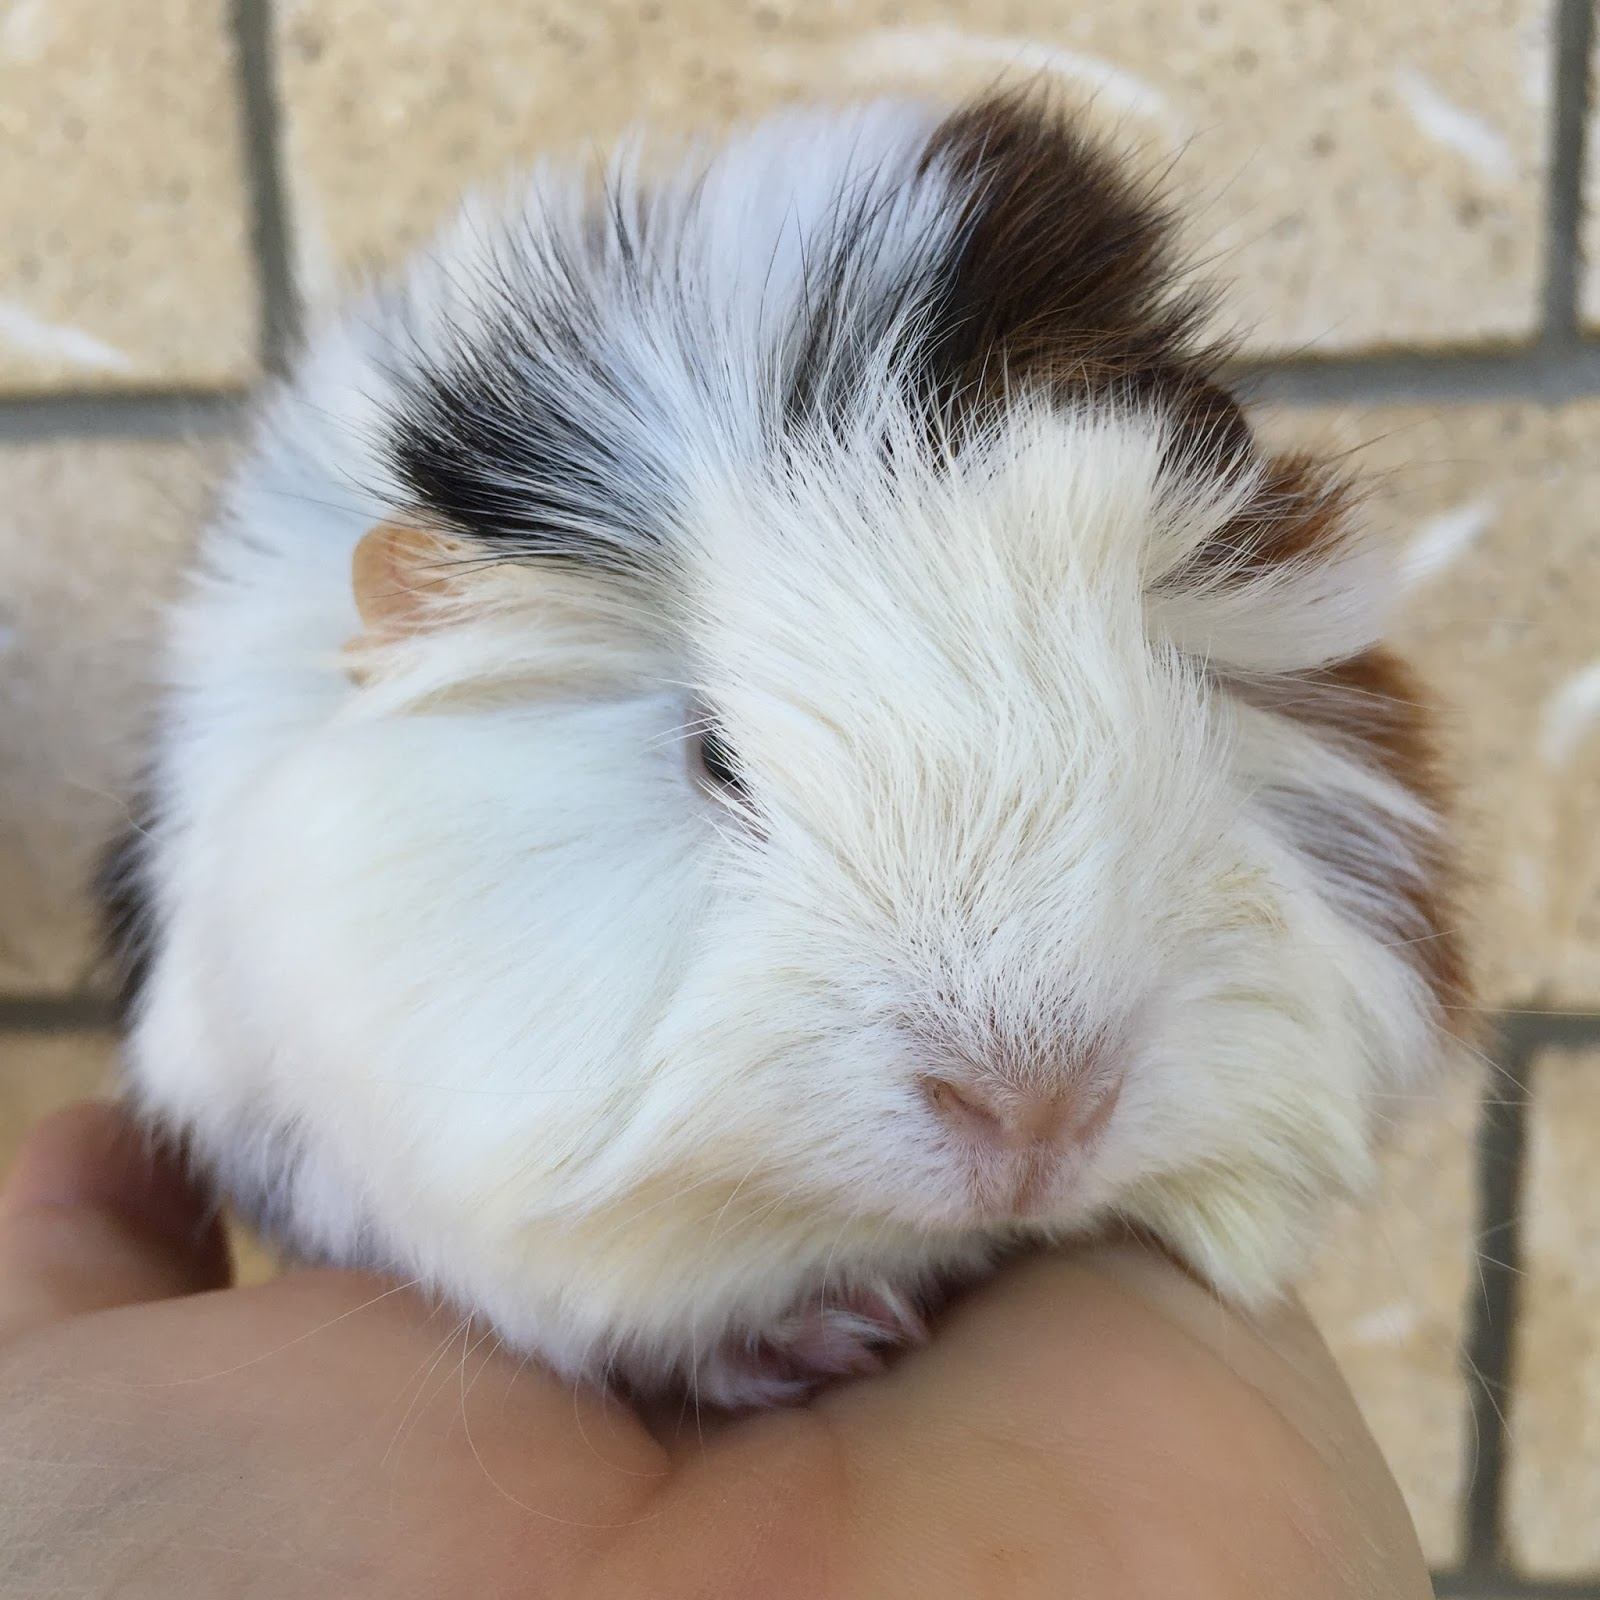 All Things Guinea Pig: Peruvian baby boy